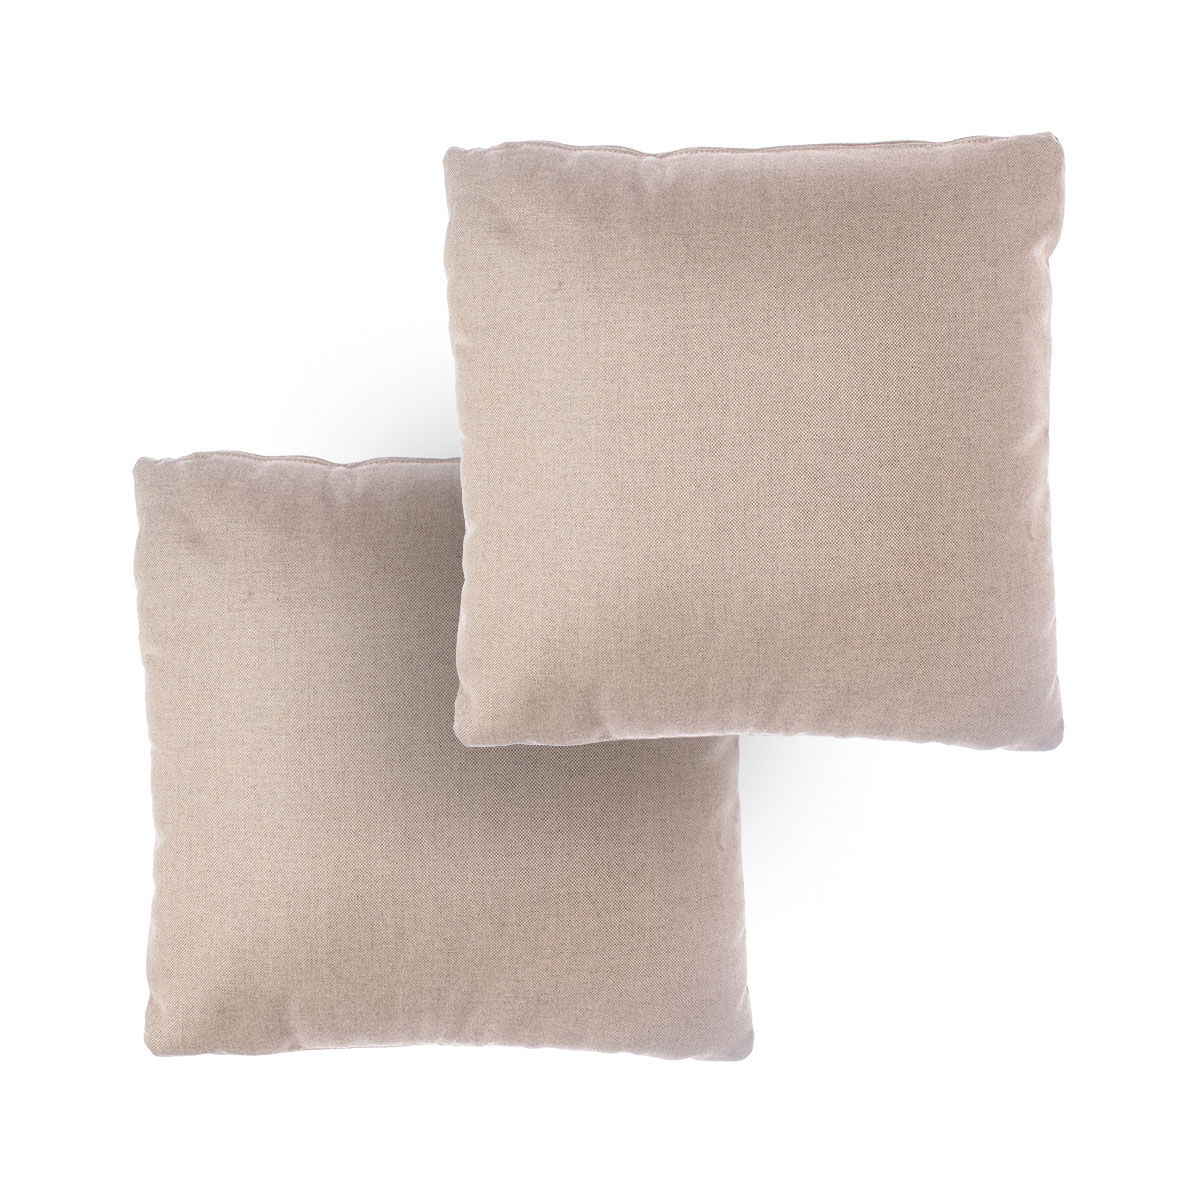 Set of 2 small cushions for 2-seater sofa Zoe Braid